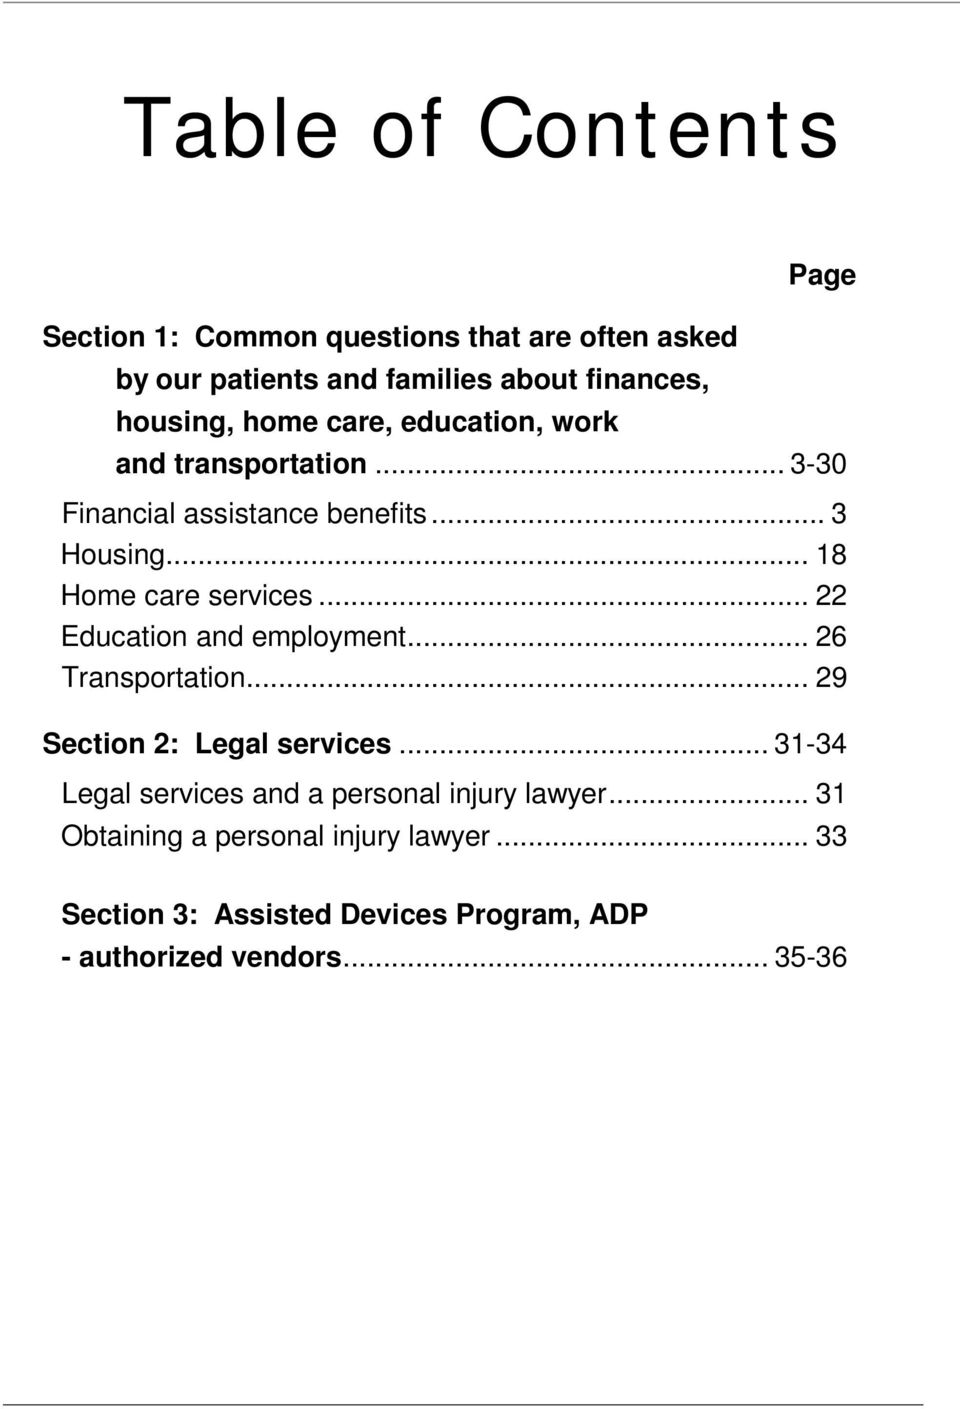 .. 22 Education and employment... 26 Transportation... 29 Section 2: Legal services.